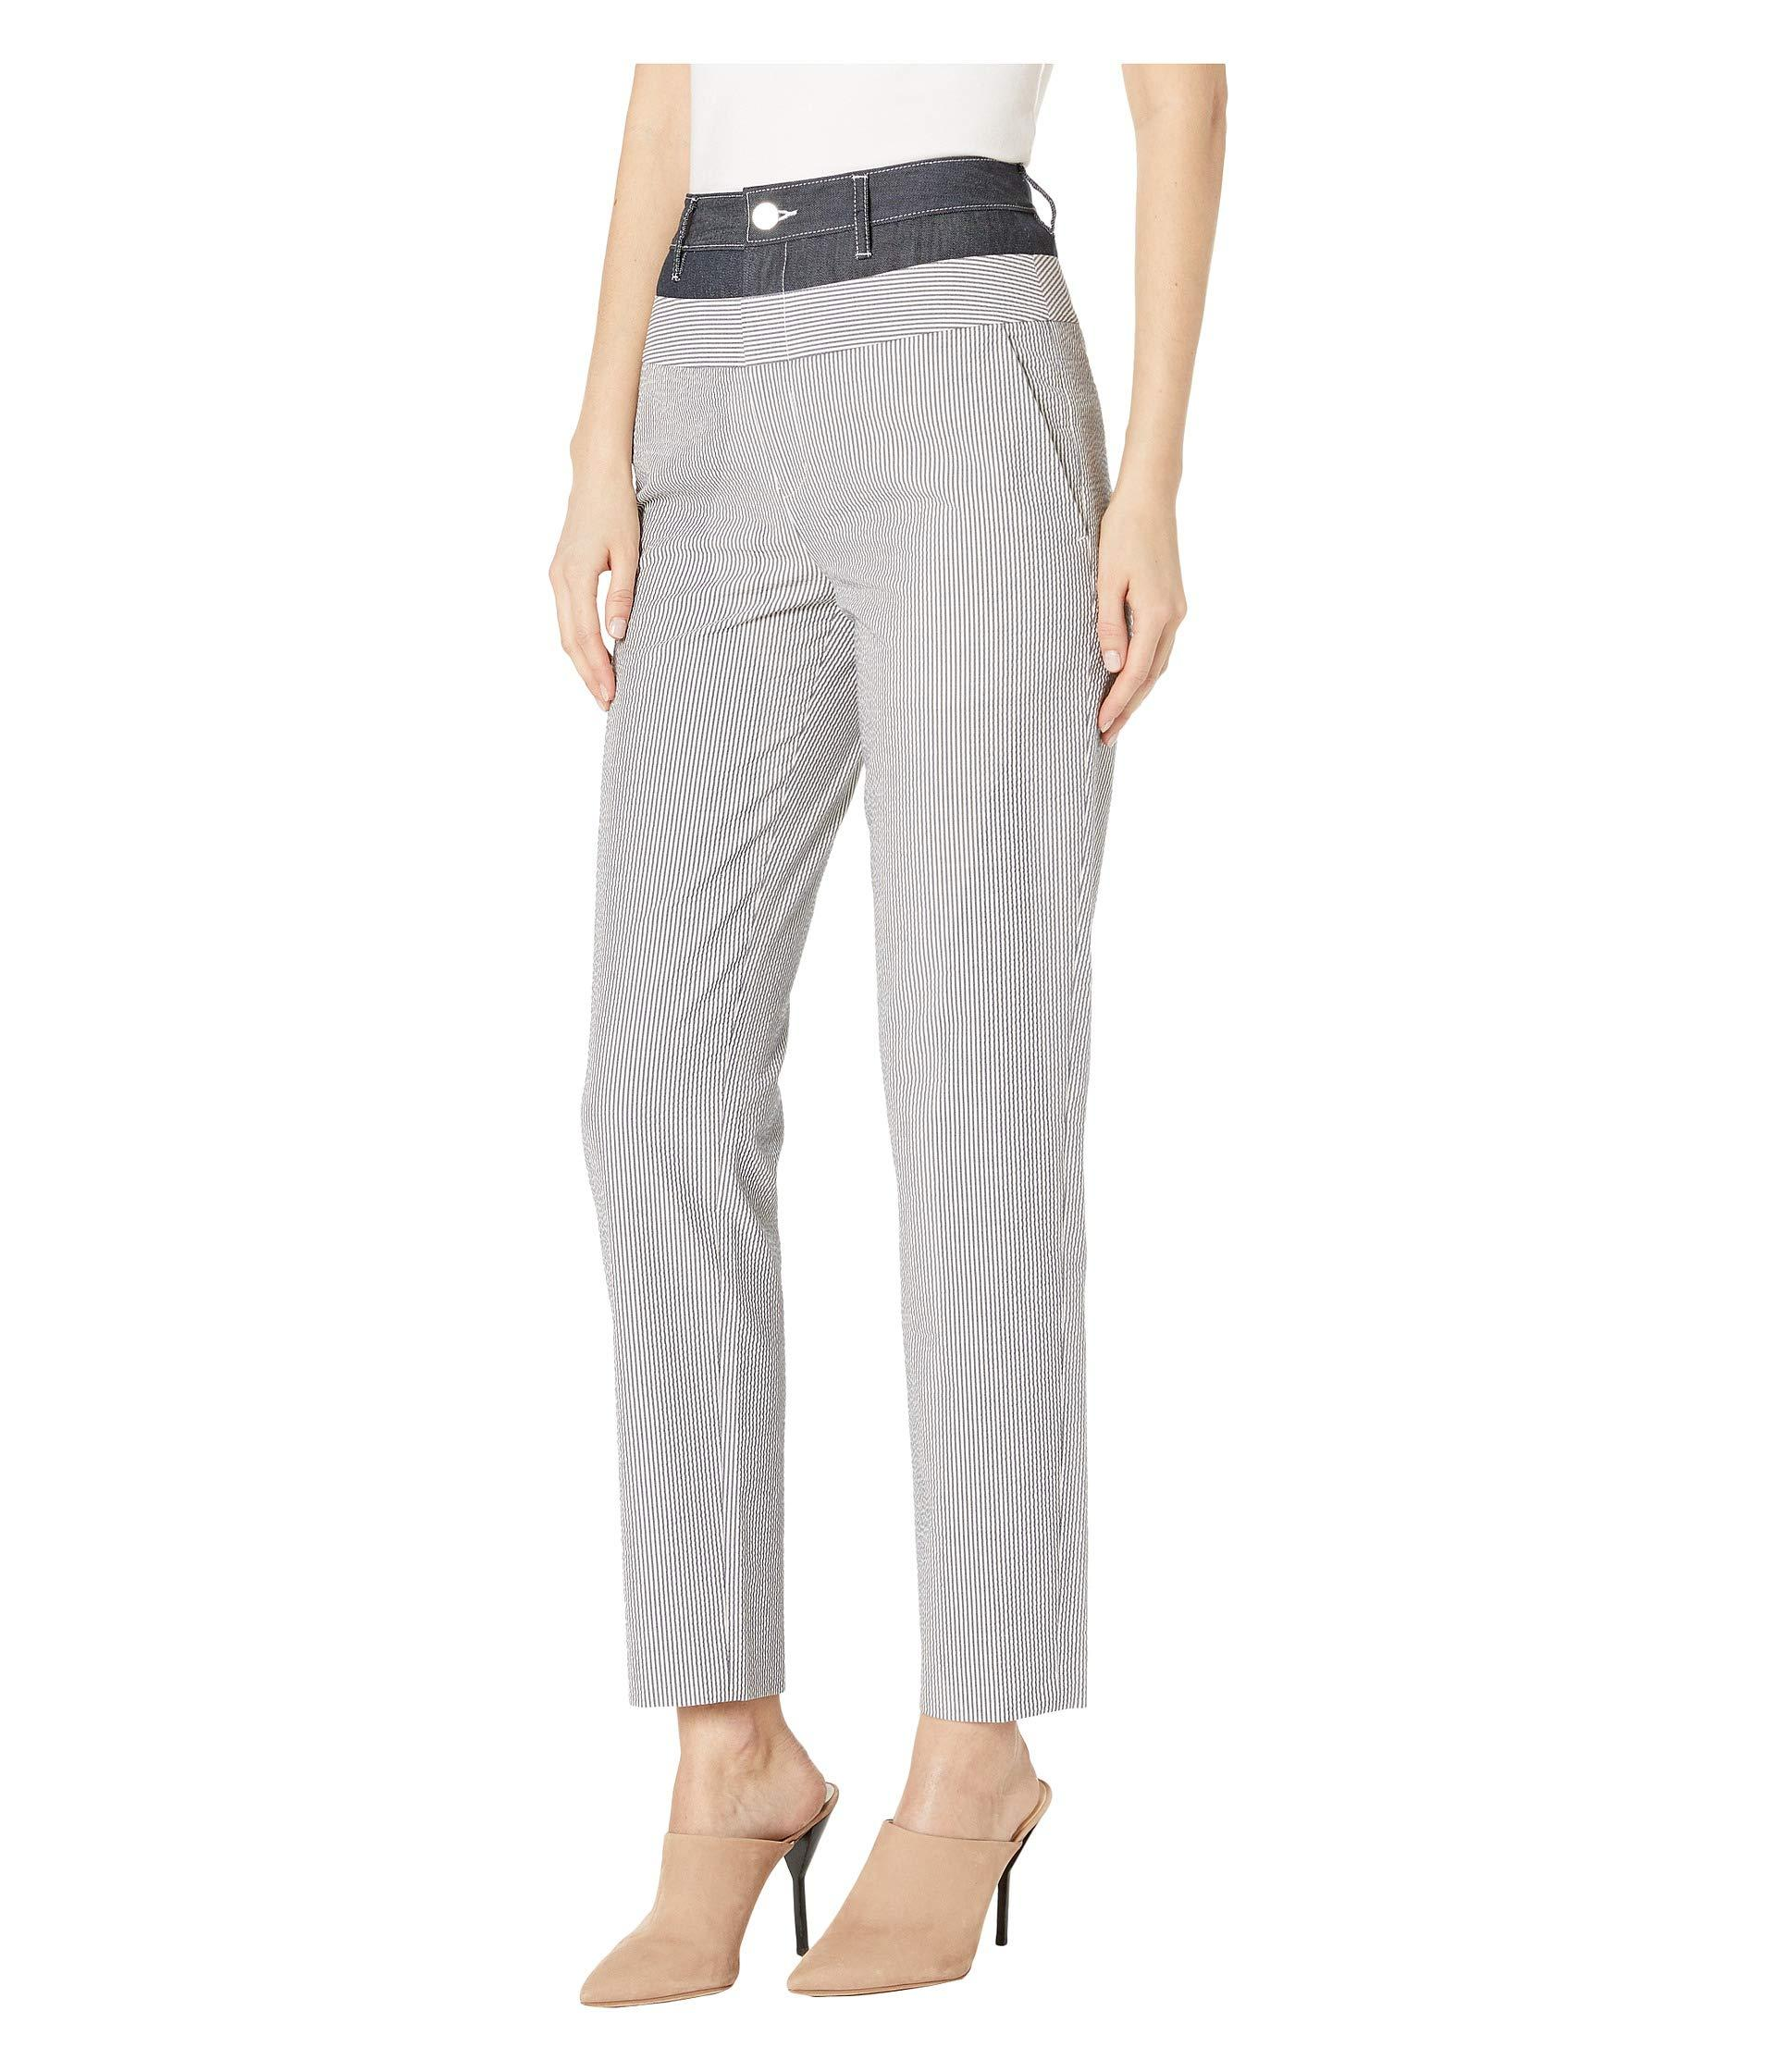 f836e4986ecd Lyst - Jason Wu Stripe Seersucker Pants (twilight star White) Women s  Casual Pants in White